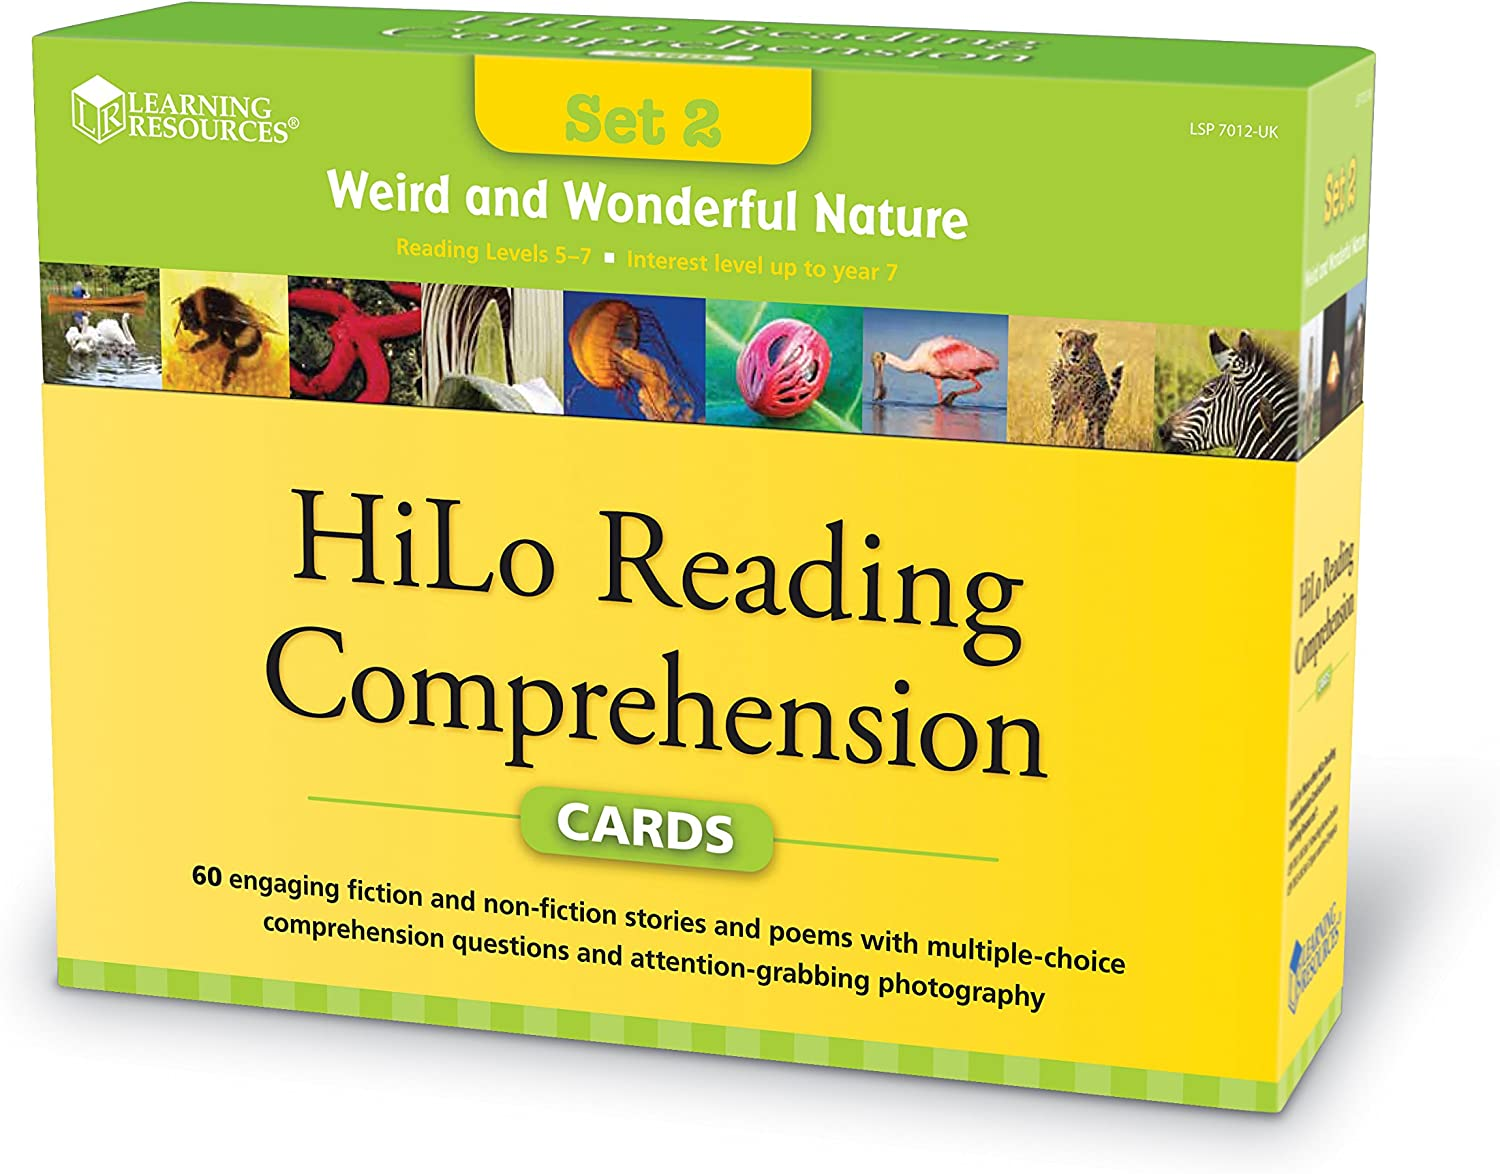 - Amazon.com: Learning Resources Hilo Reading Comprehension Cards